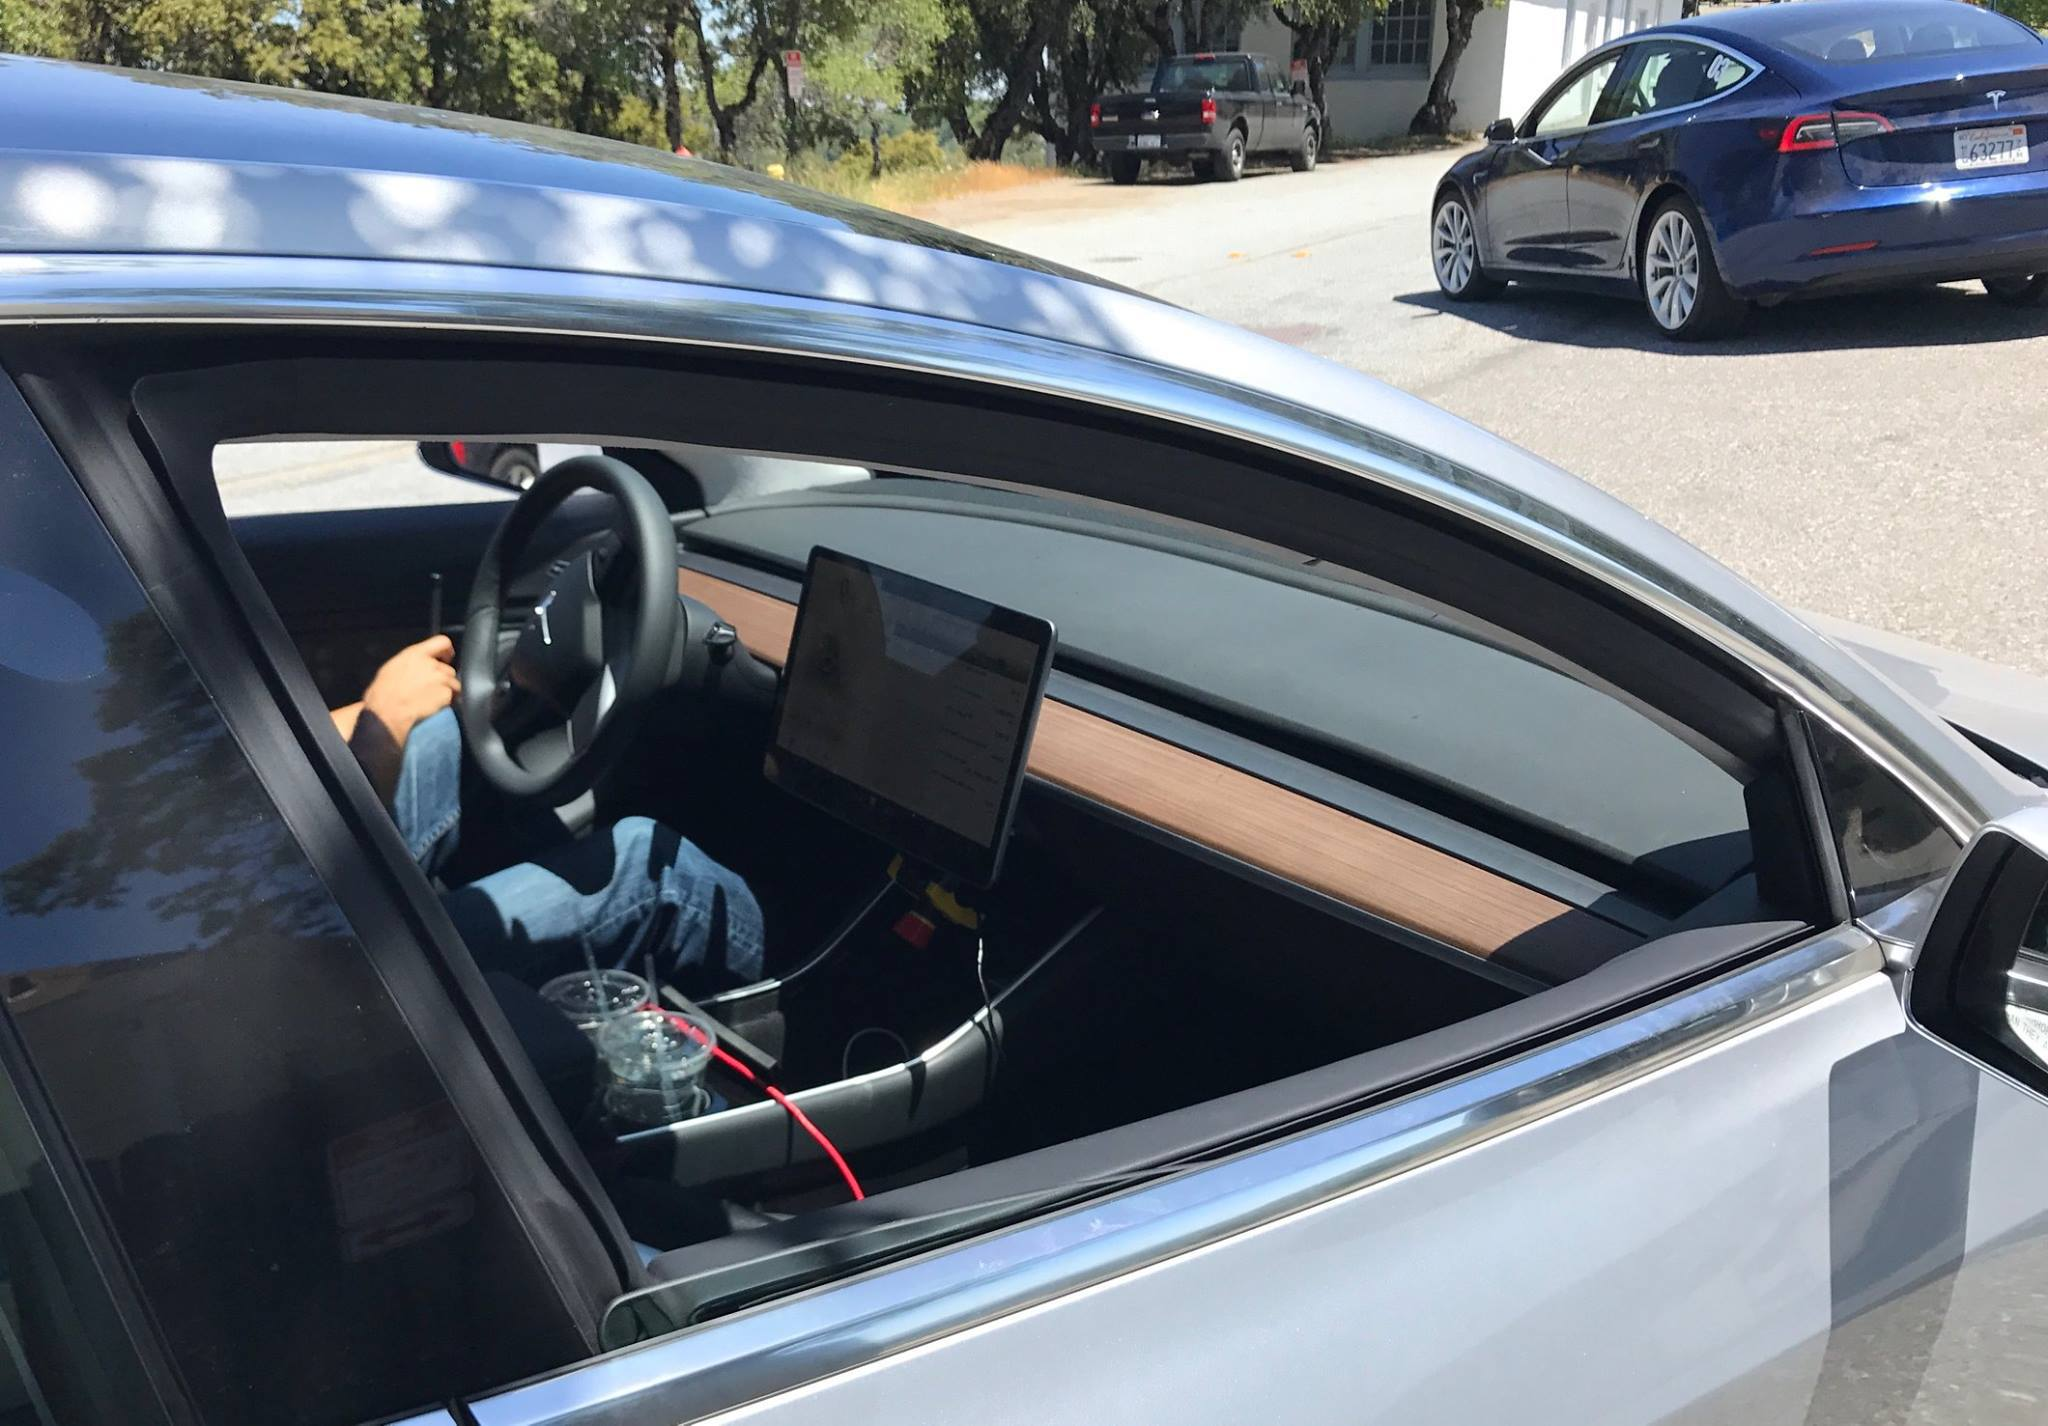 Tesla Model 3 interieur (spyshot)